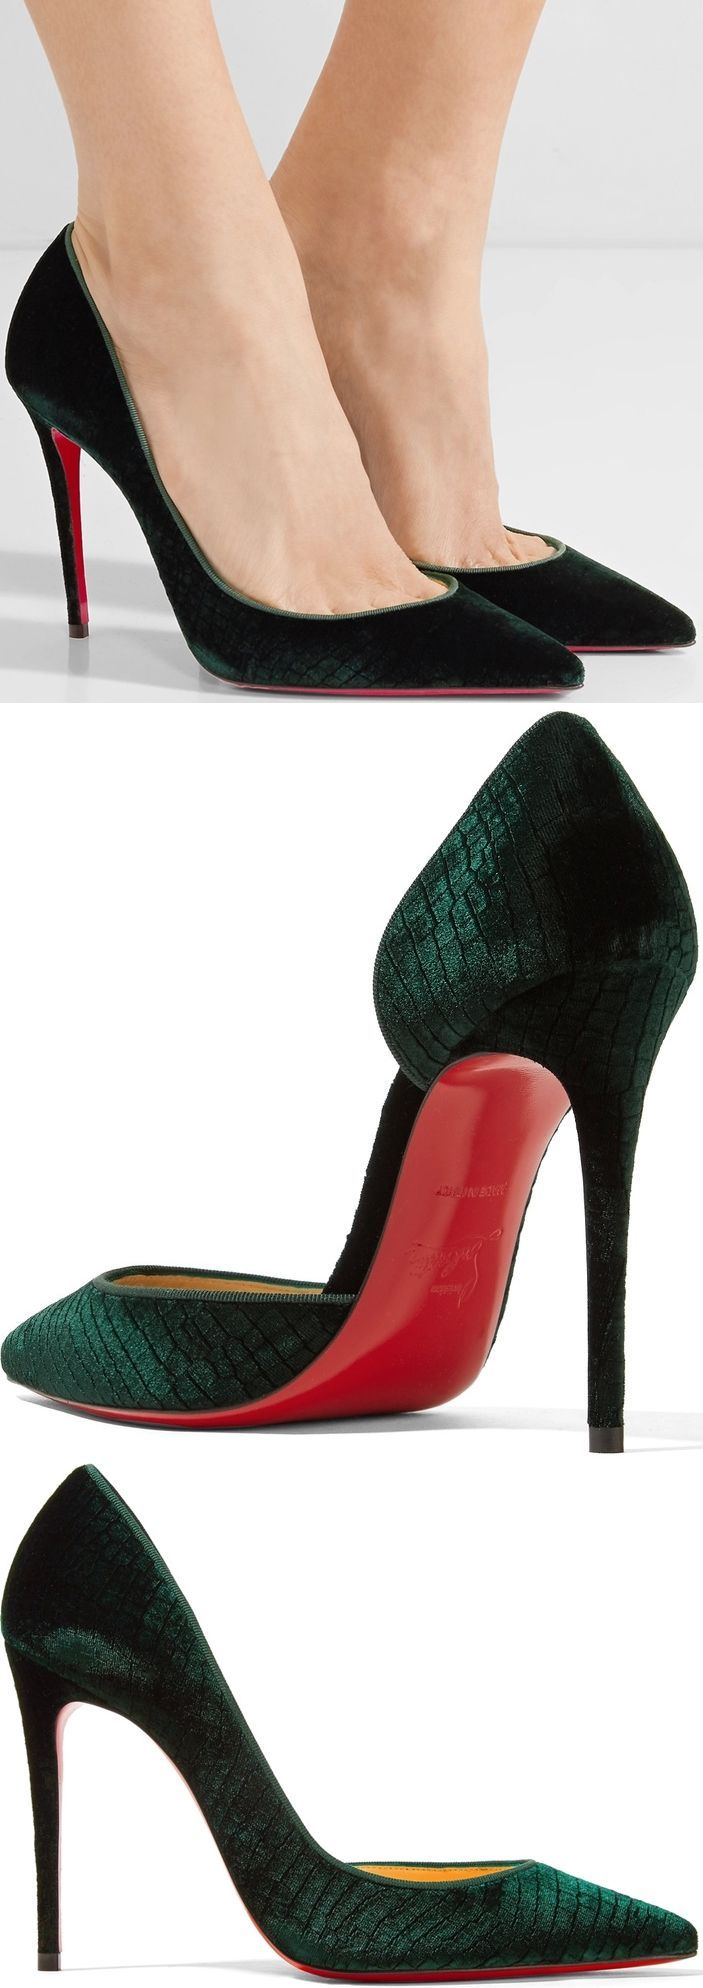 Christian Louboutin's 'Iriza' pumps are made from plush croc-effect velvet in a rich emerald hue. Set on a slim stiletto heel, they're designed in a flattering half d'Orsay silhouette with low-cut vamps that create the illusion of longer legs.